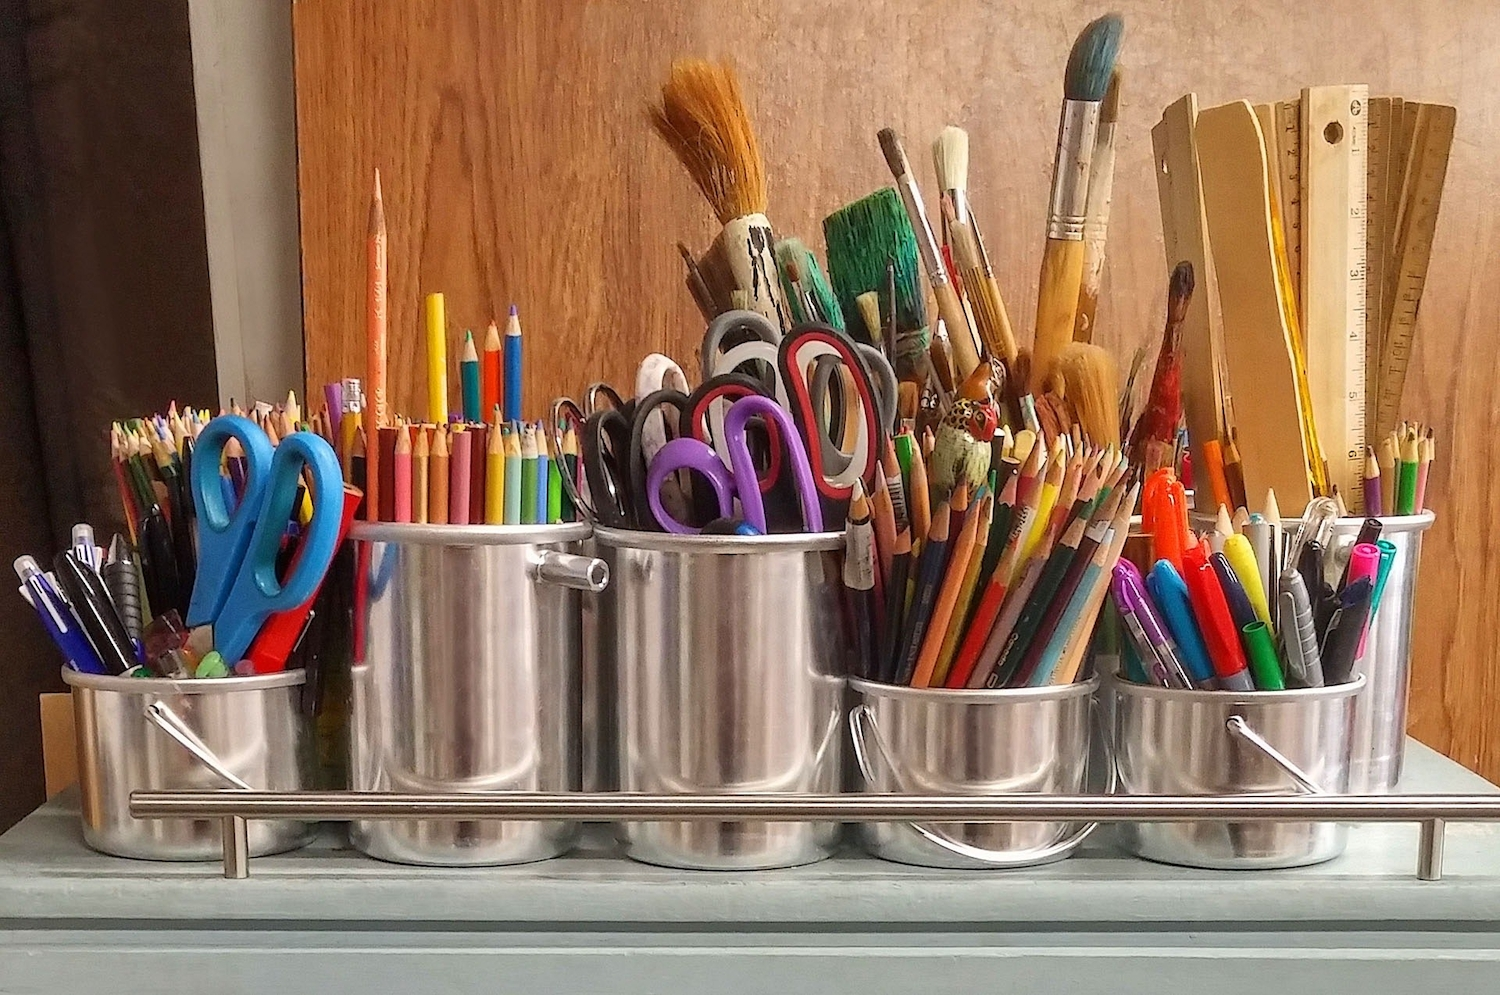 Pencils and paint brushes in stainless steel bucket